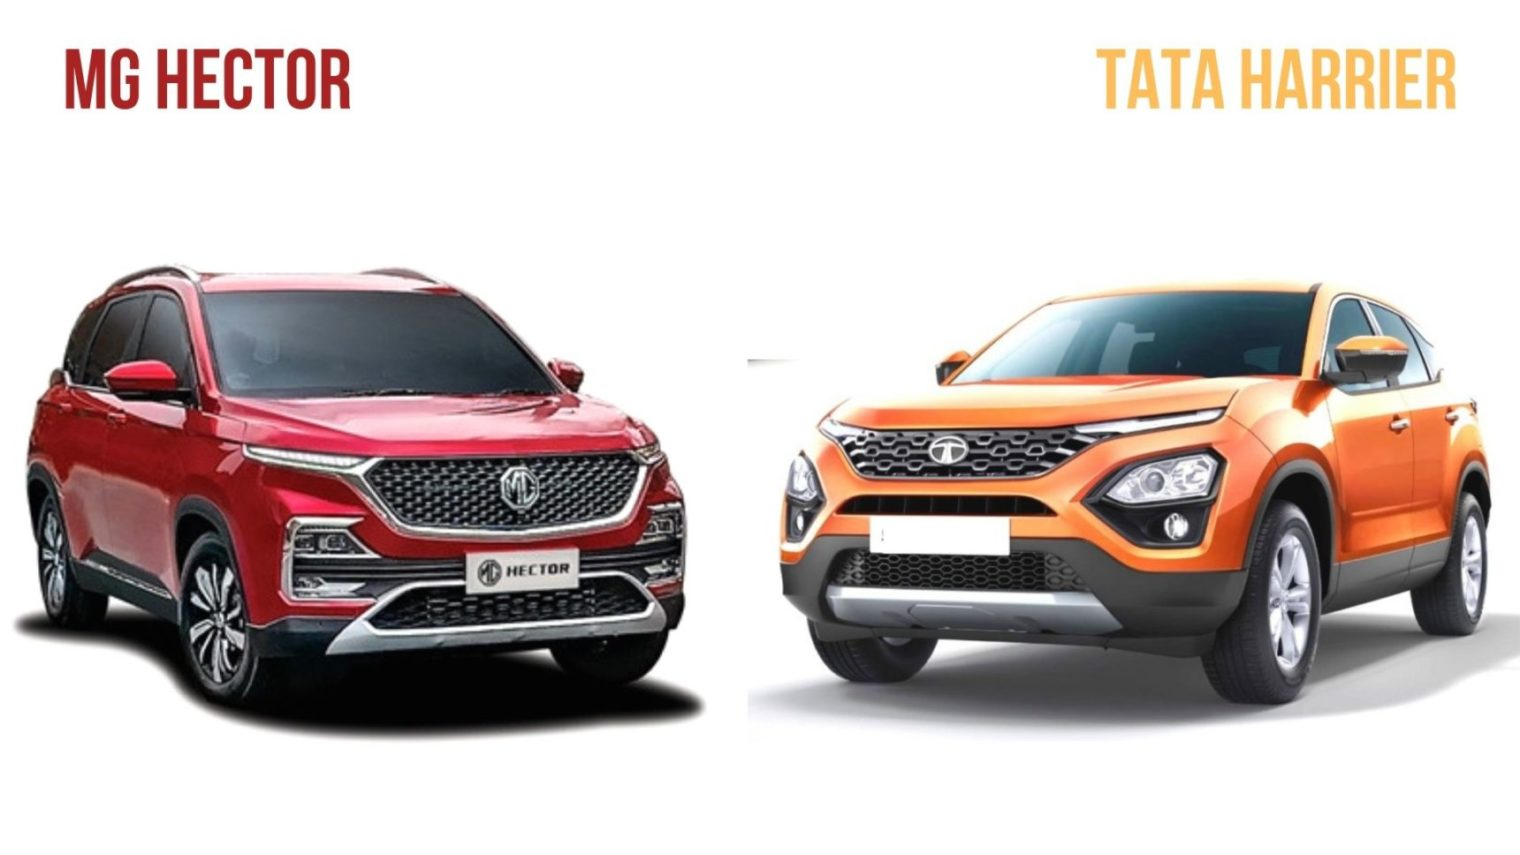 The Ultimate Comparison: Mg Hector Vs Tata Harrier Vs Jeep Compass